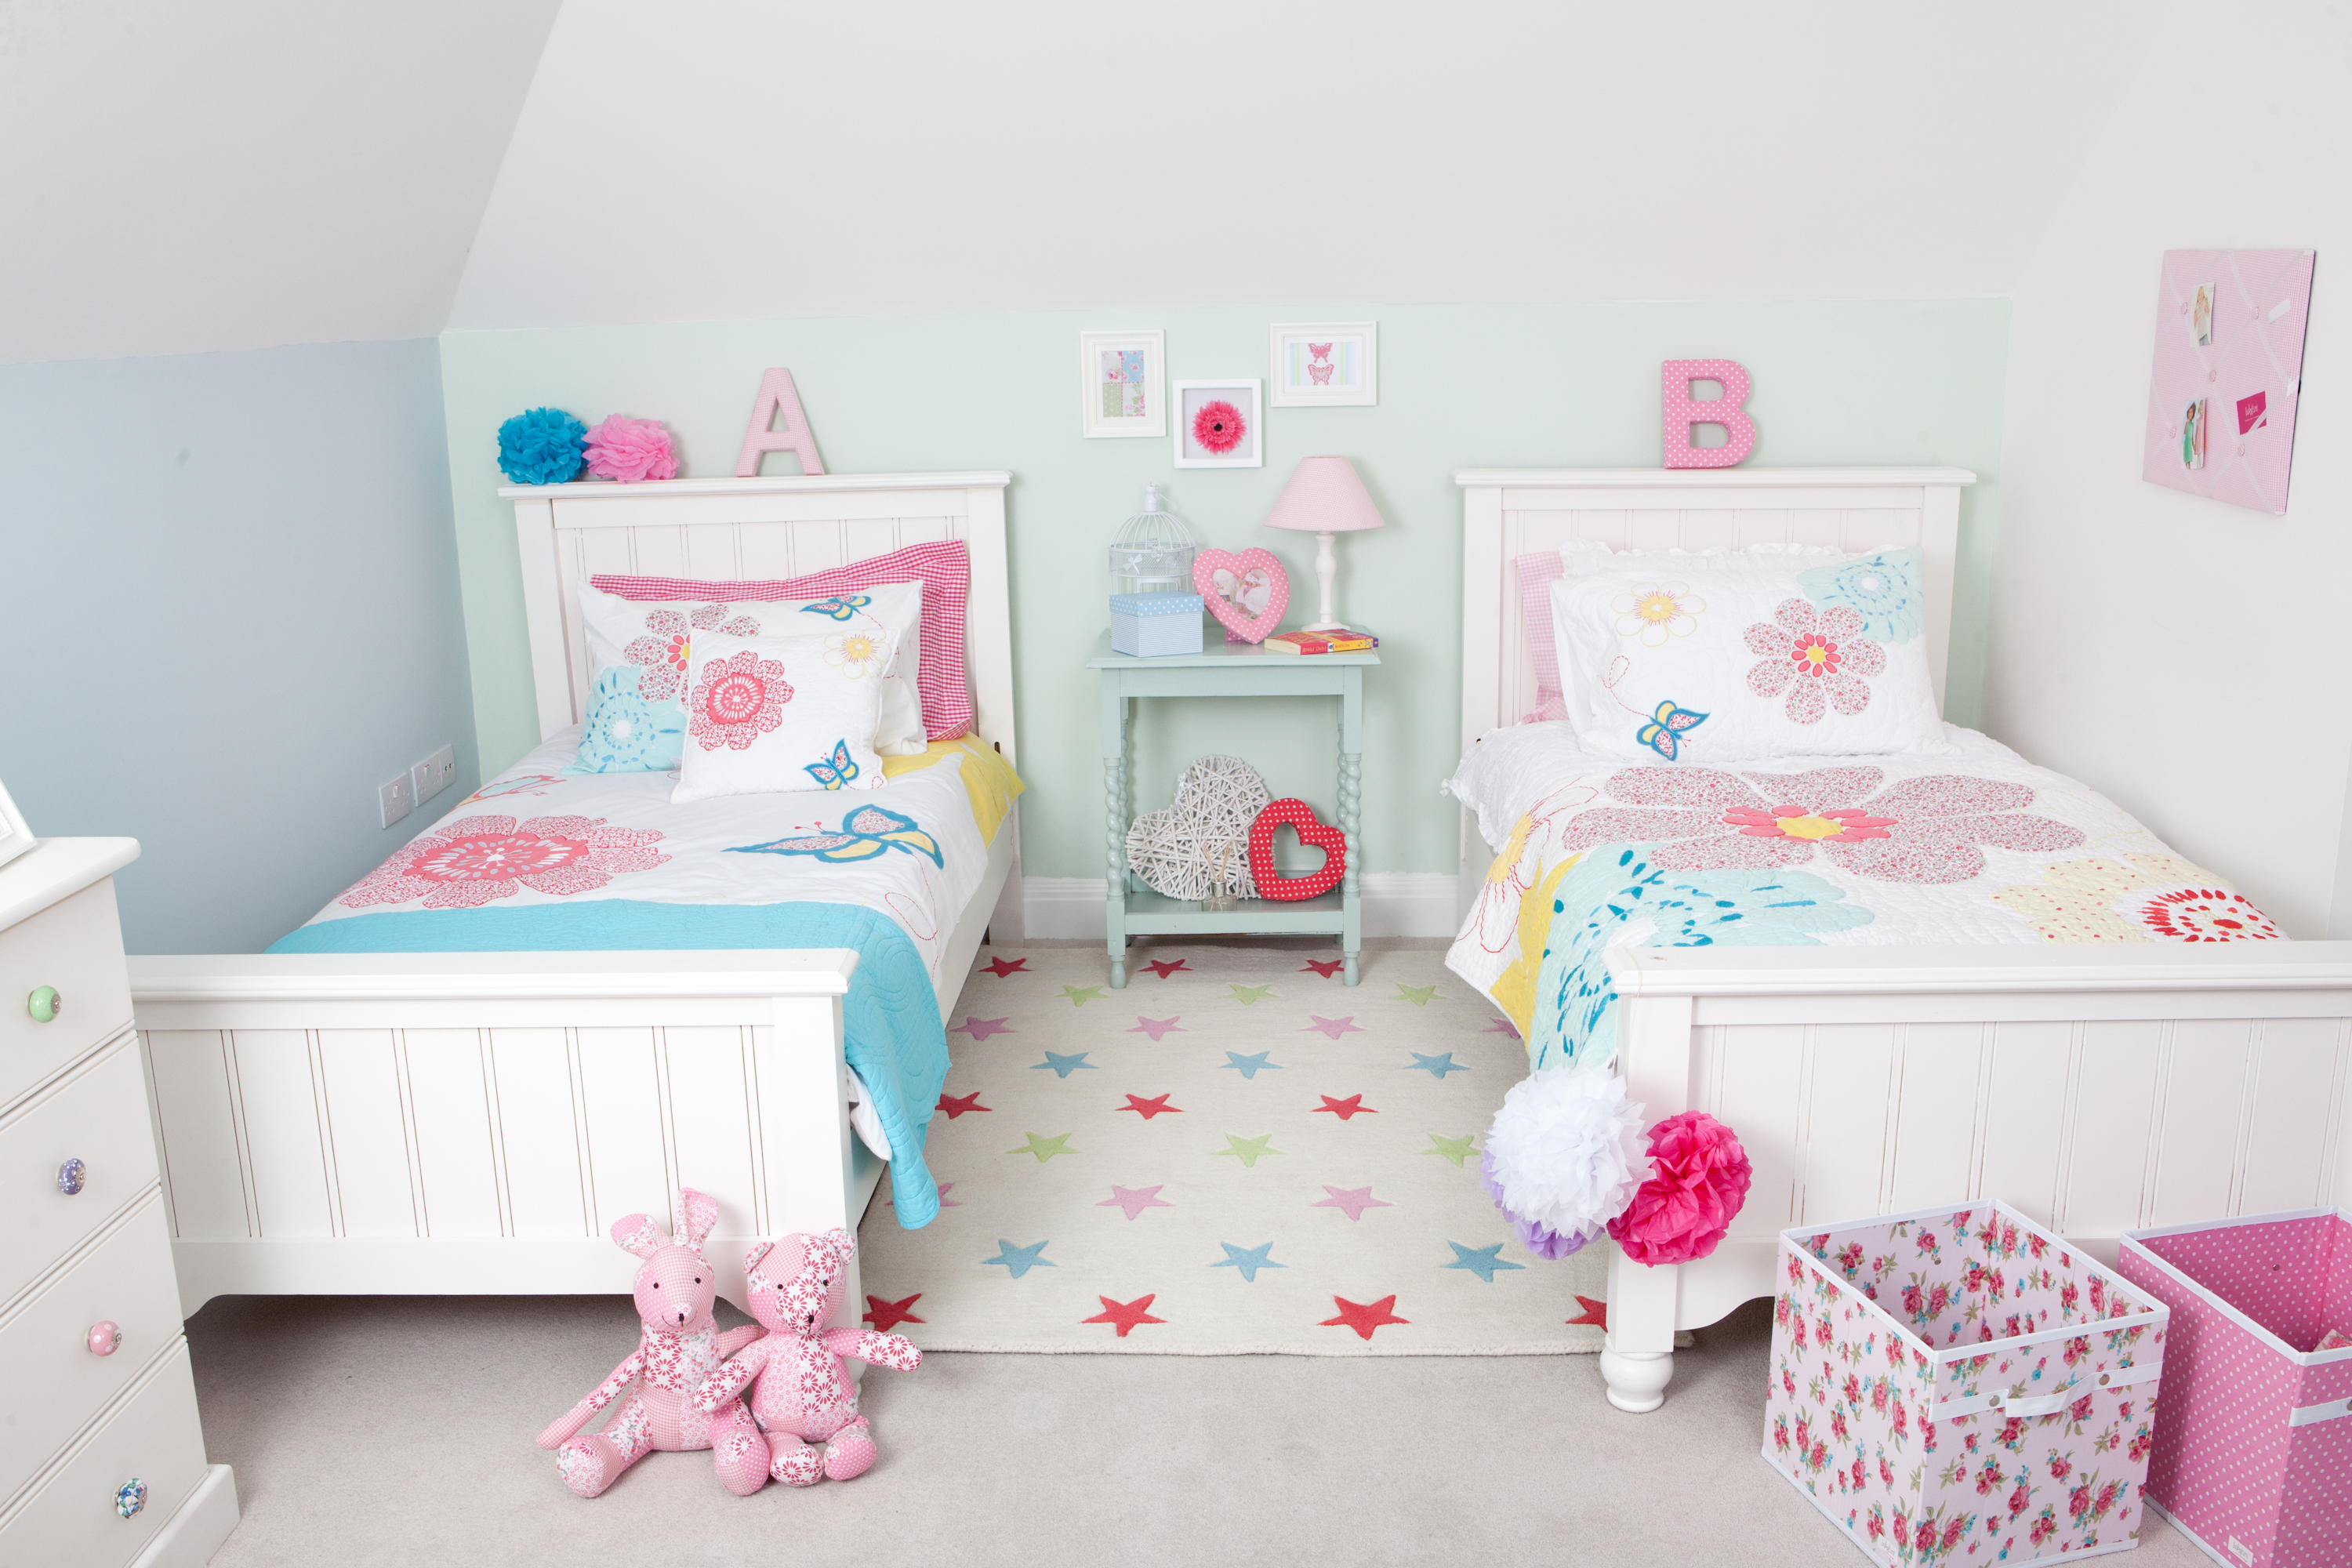 Toddler twin beds for kids room homesfeed for Girl toddler bedroom ideas